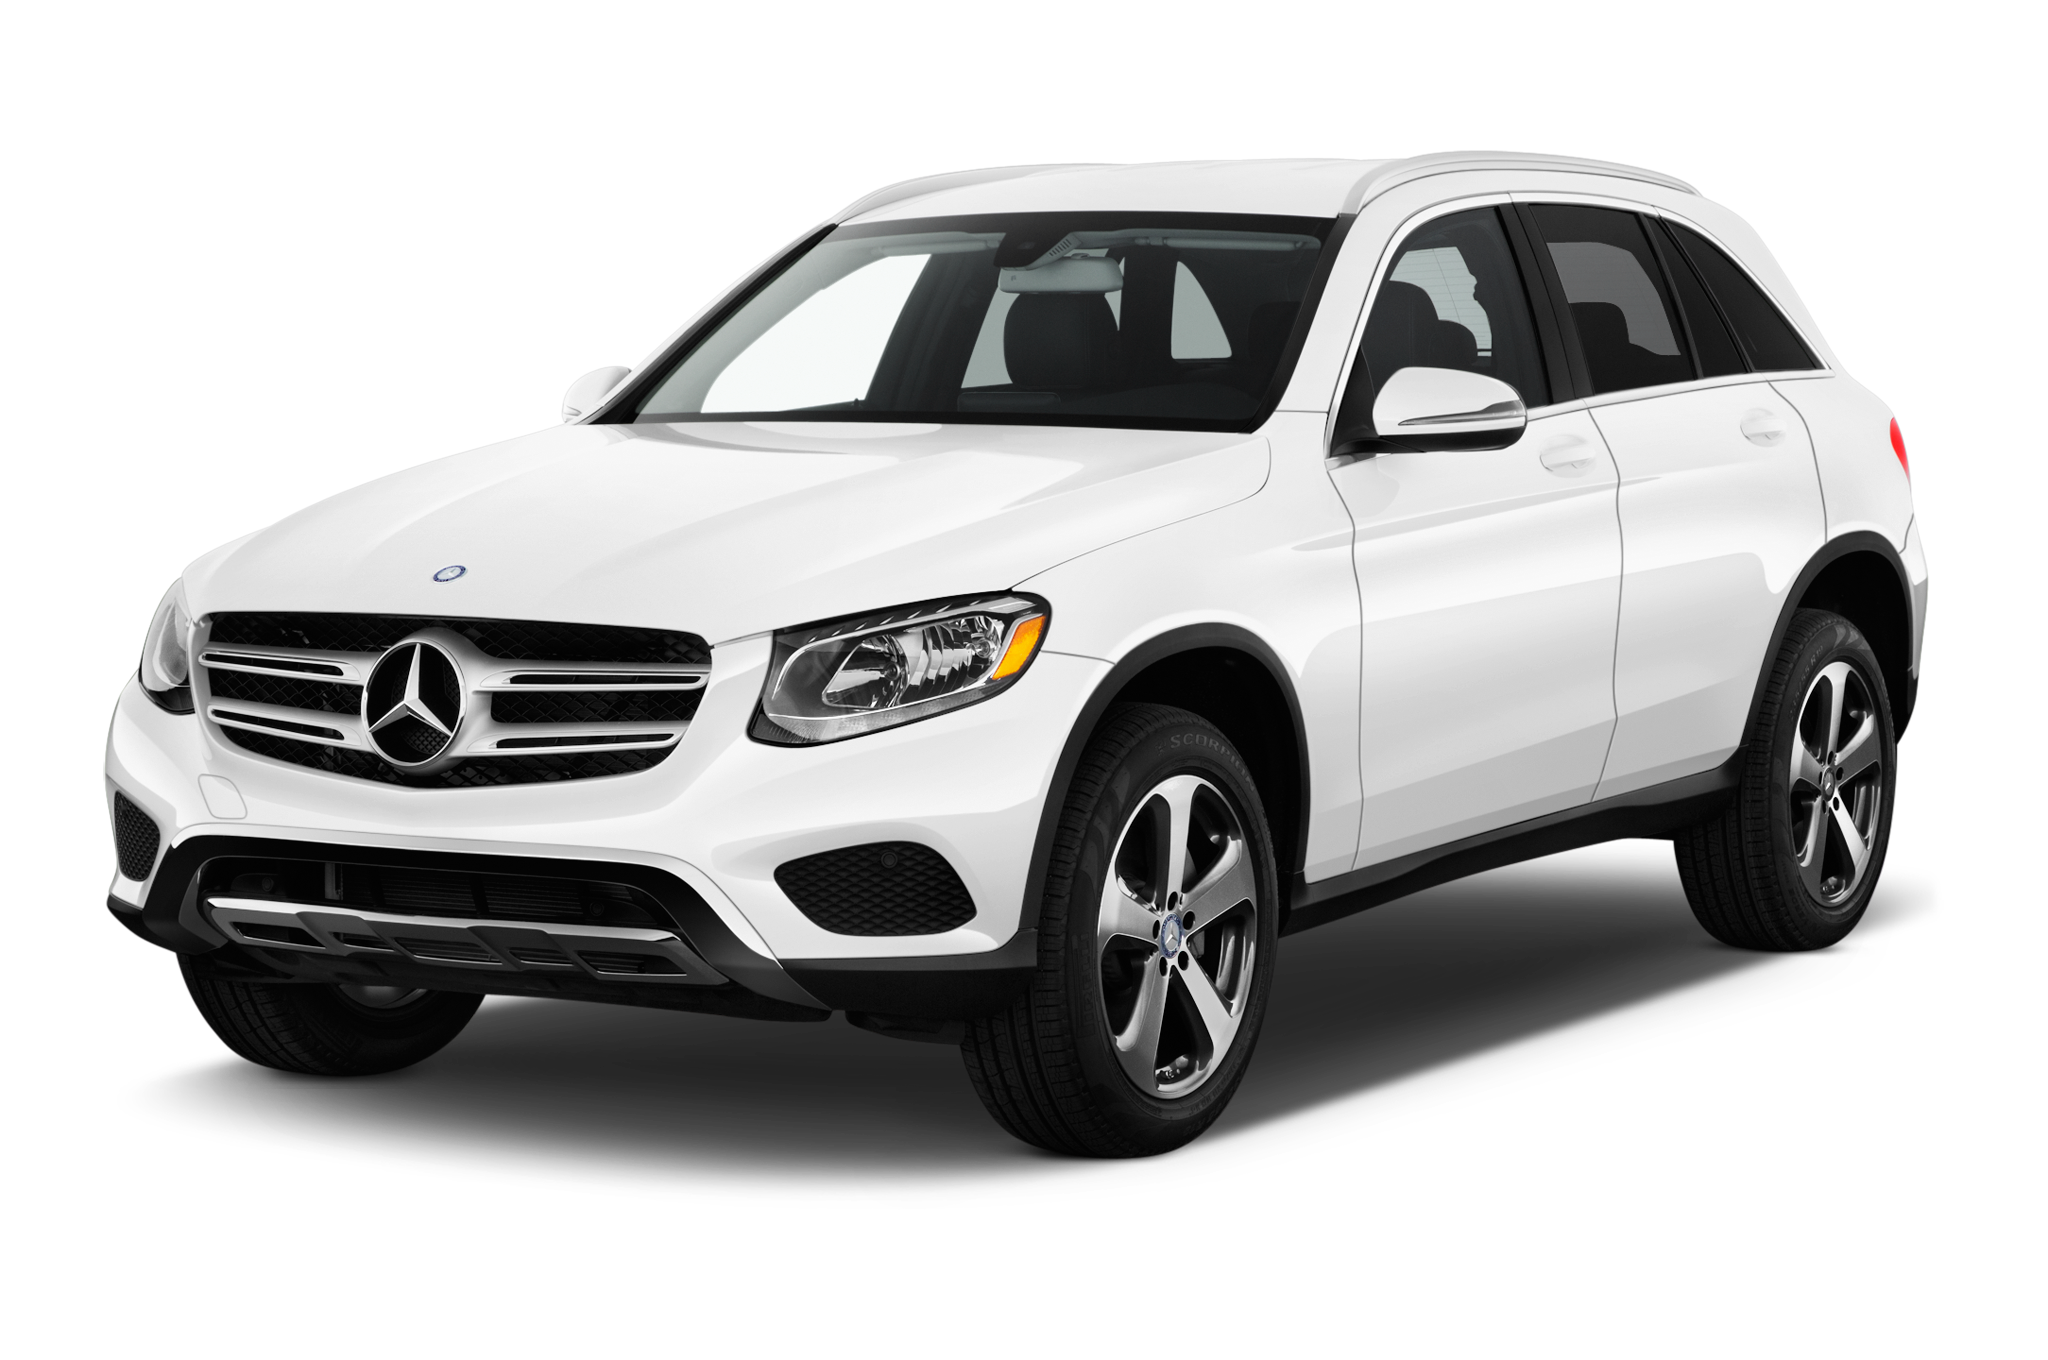 mercedes benz glc class reviews and rating motor trend #26189